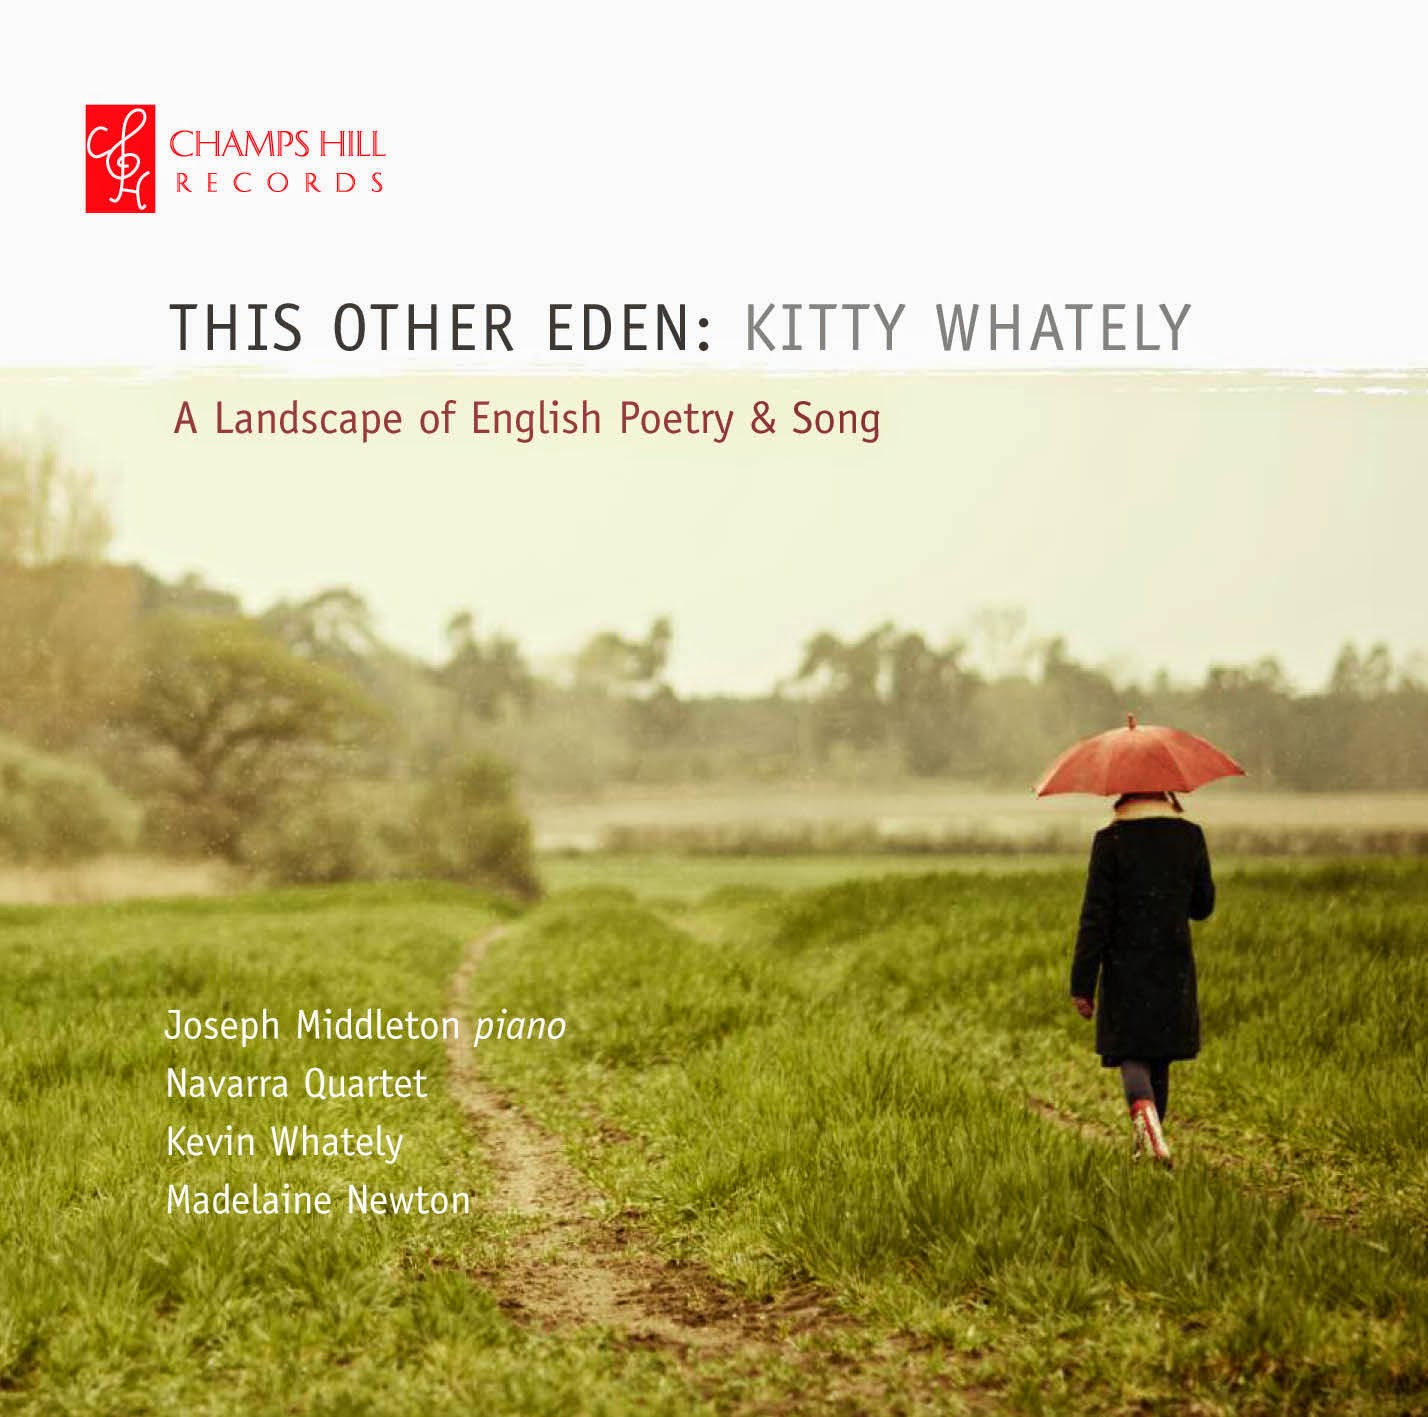 CHRCD094 - This Other Eden - Kitty Whately